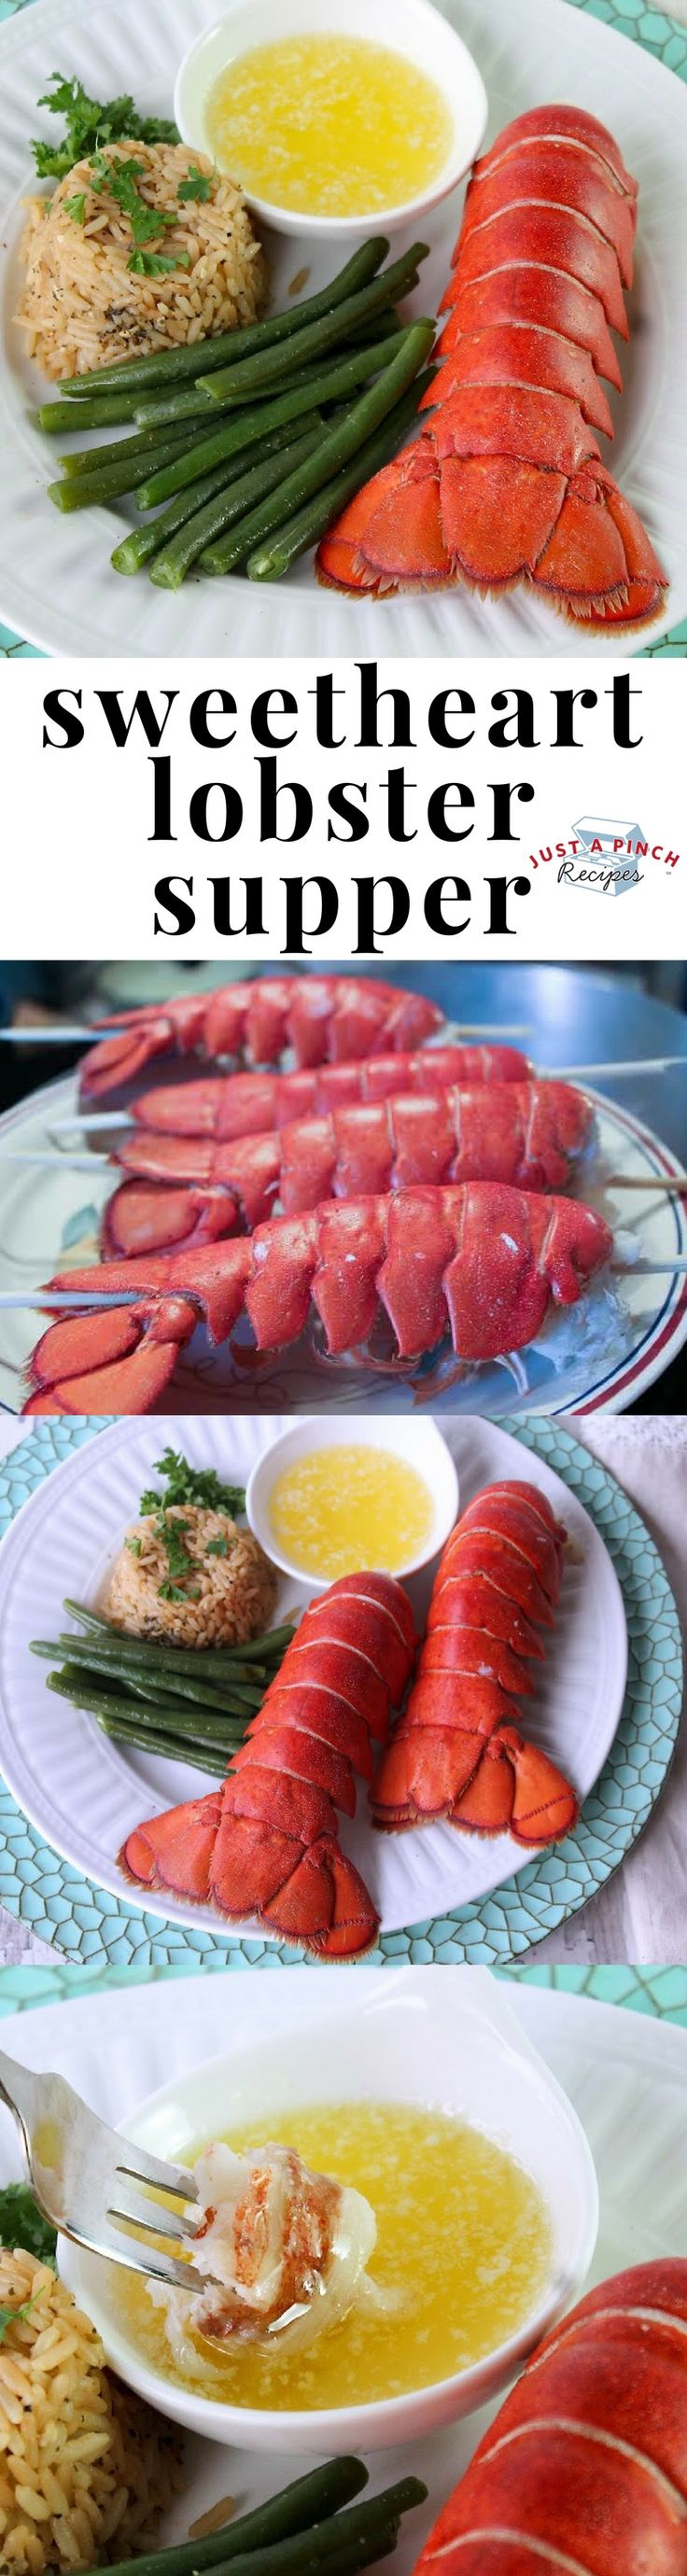 Homemade lobster dinner recipe with herb rice and green beans is a delicious Valentine's Day dinner recipe. #lobster #dinnertime #dinnerrecipes #valentinesday #valentinesdaydinner #whatsfordinner #lobsterrecipe